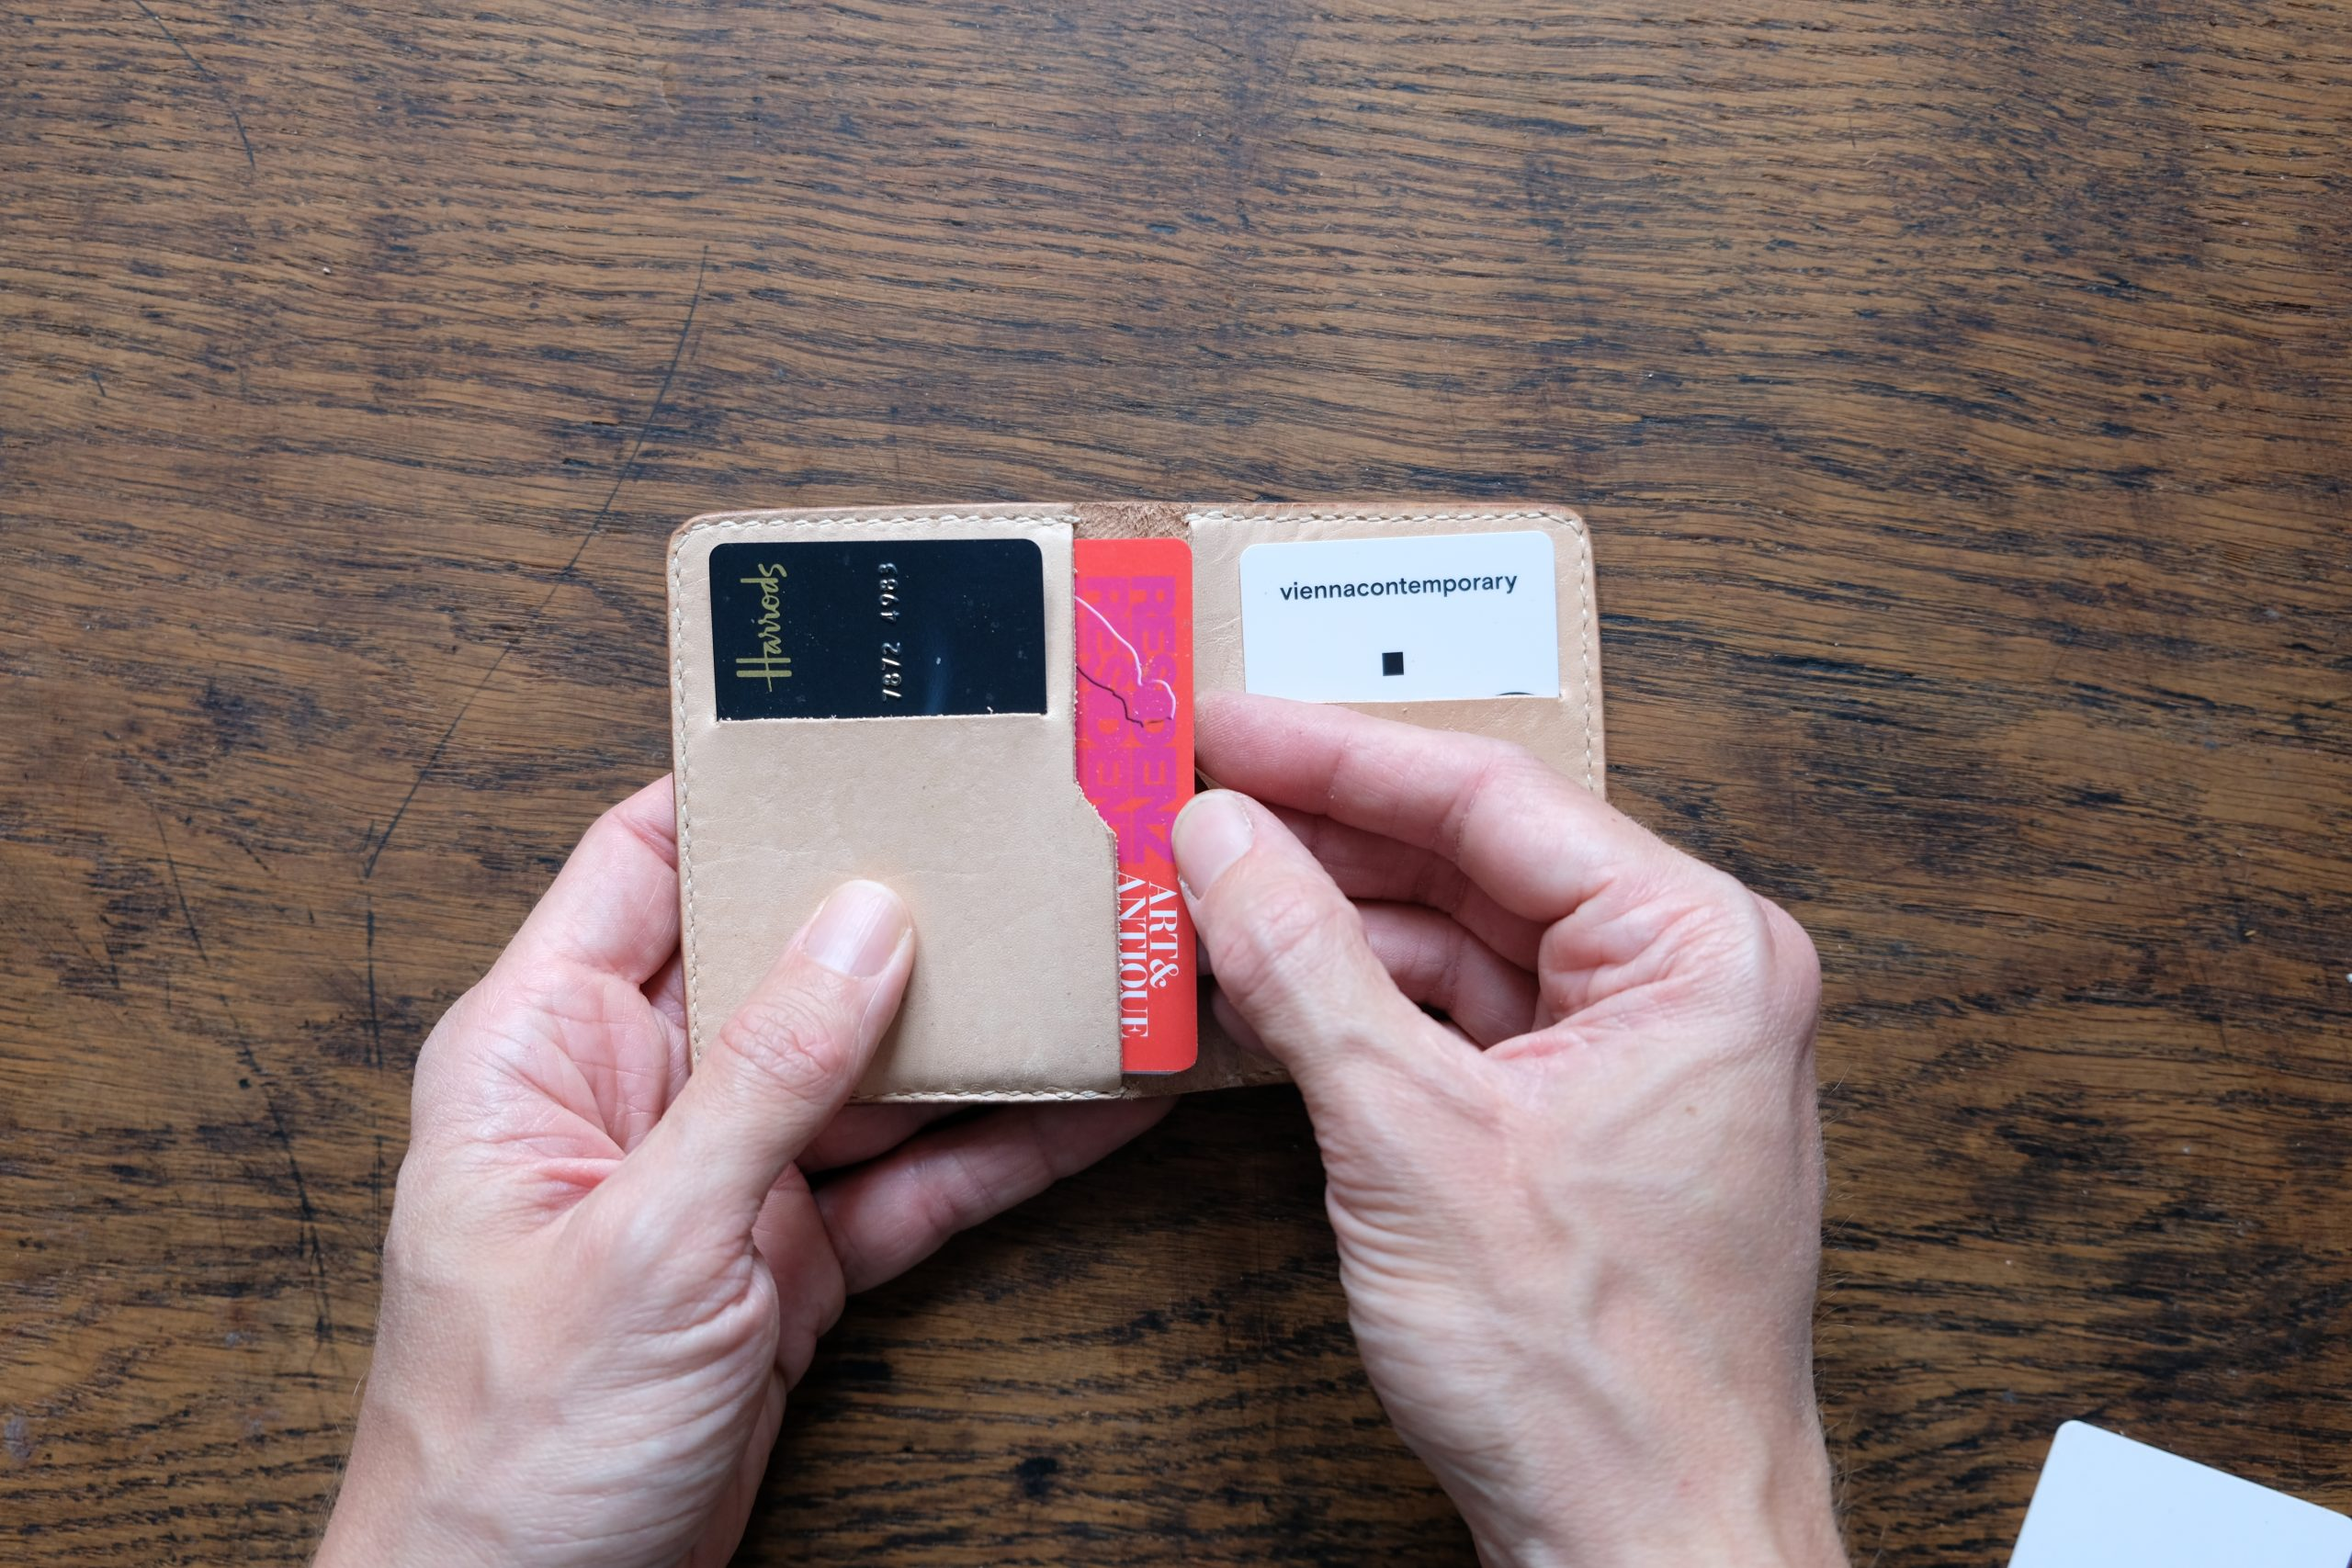 lerif designs small bifold leather wallet in natural on wood background demonstrating card pockets